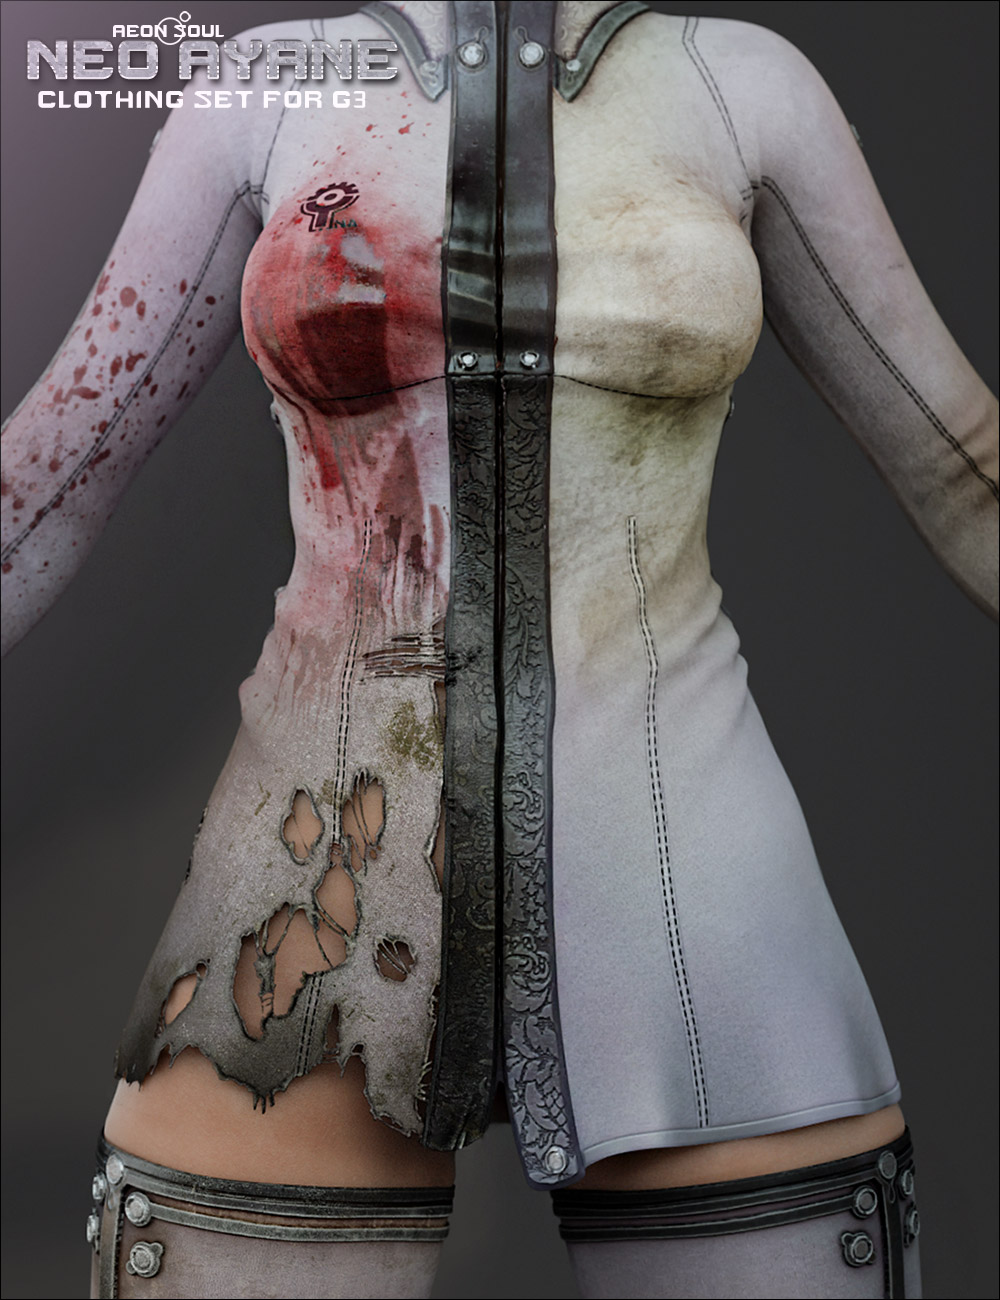 Neo Ayane for Genesis 3 Female(s) by: Aeon Soul, 3D Models by Daz 3D